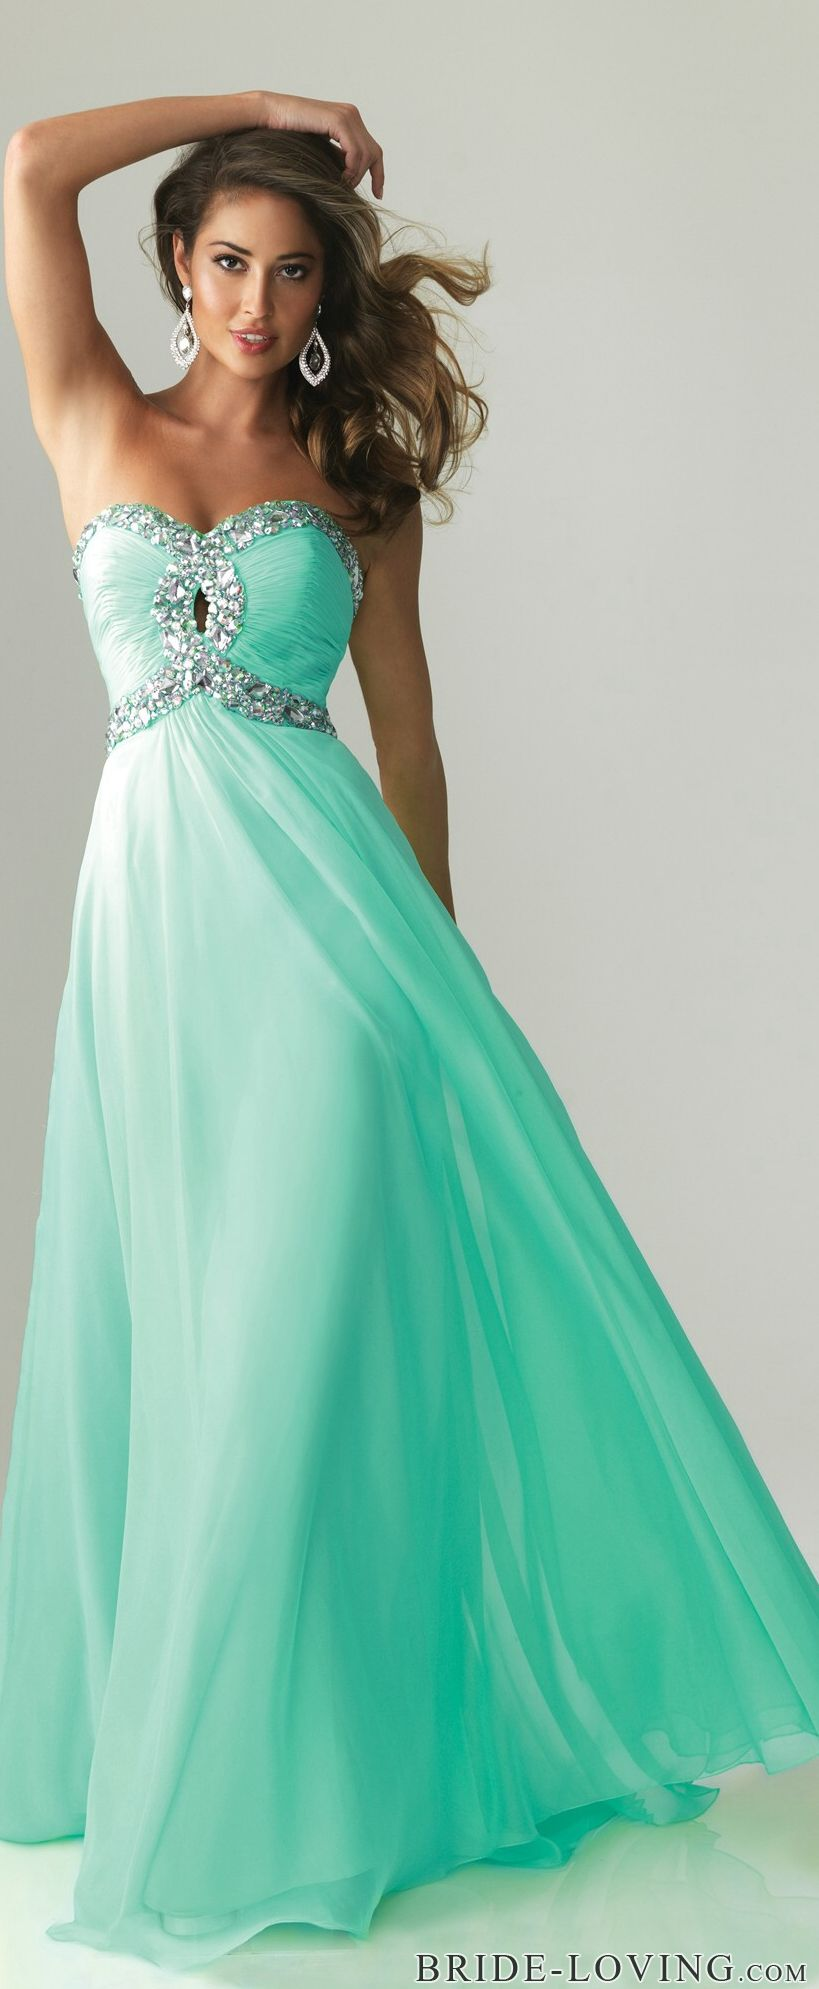 Mint formal gown loving the detail on the bust and the way it ...